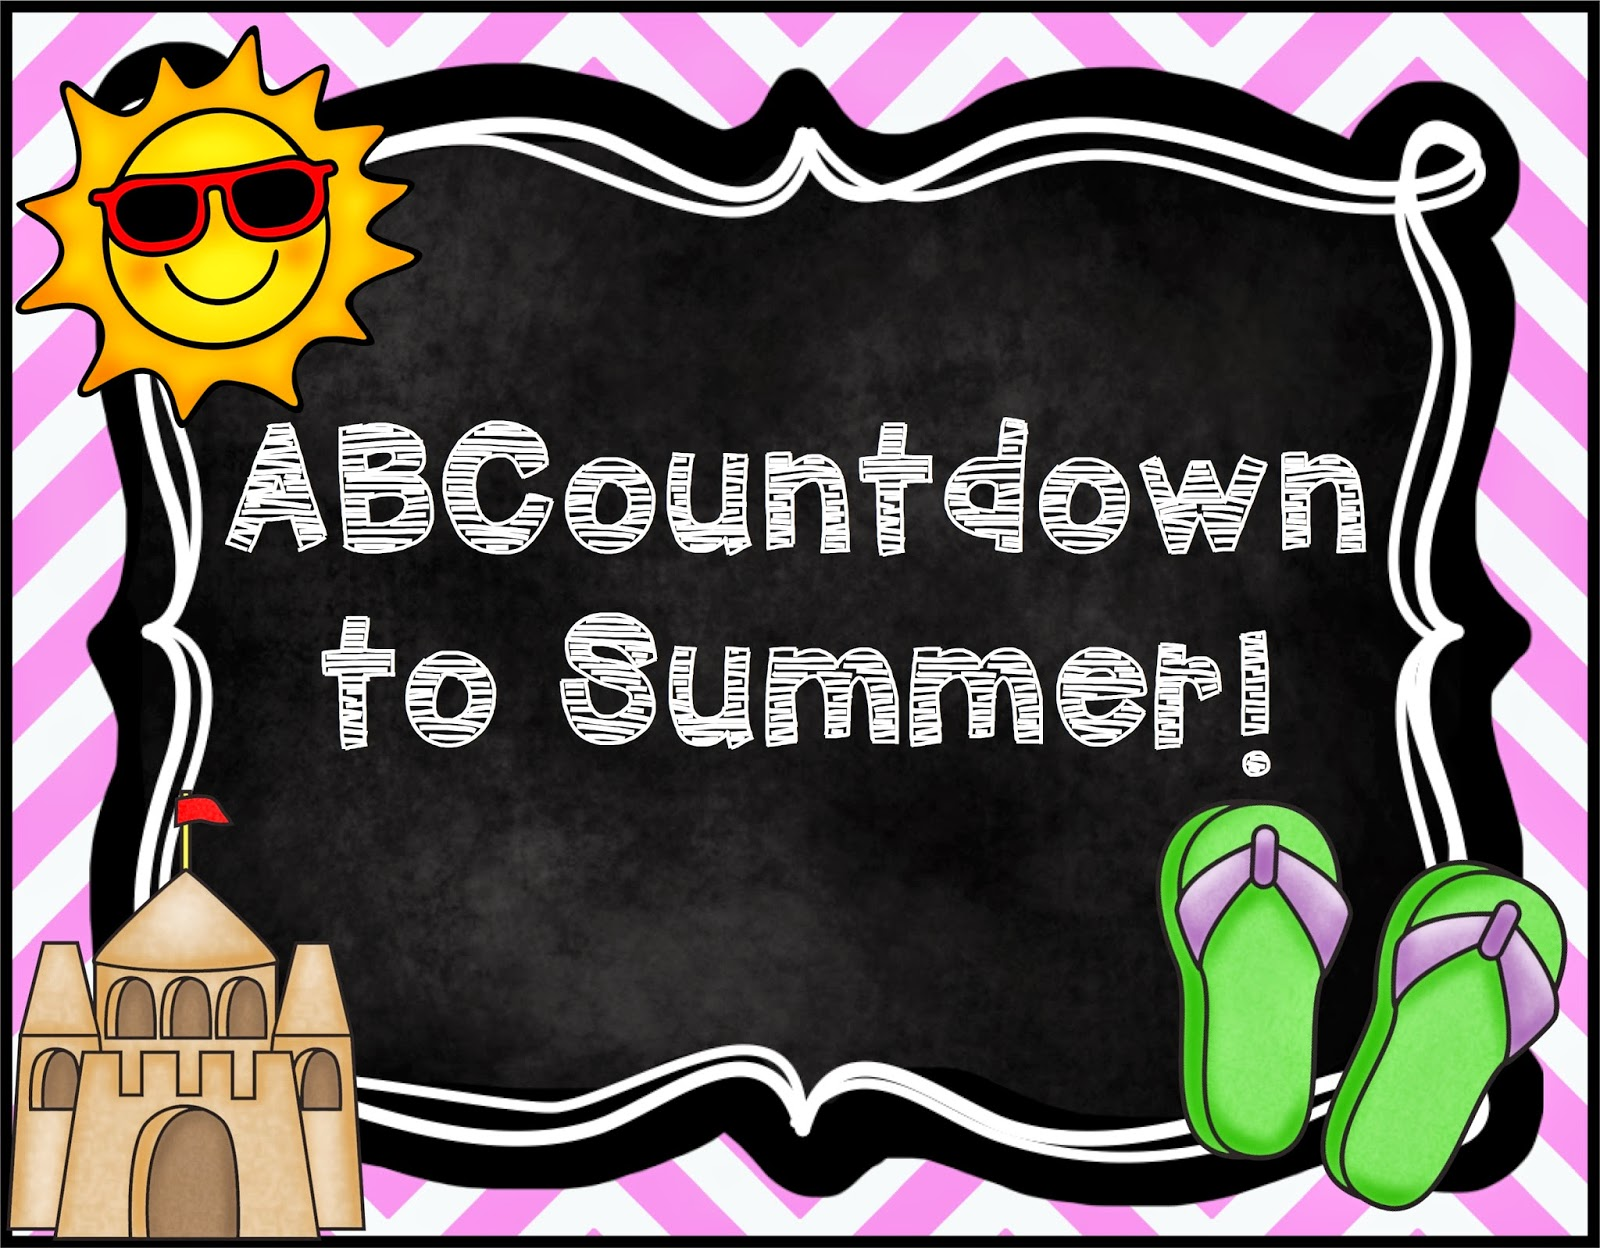 Countdown back to school clipart svg free stock Countdown to school clipart - ClipartFox svg free stock